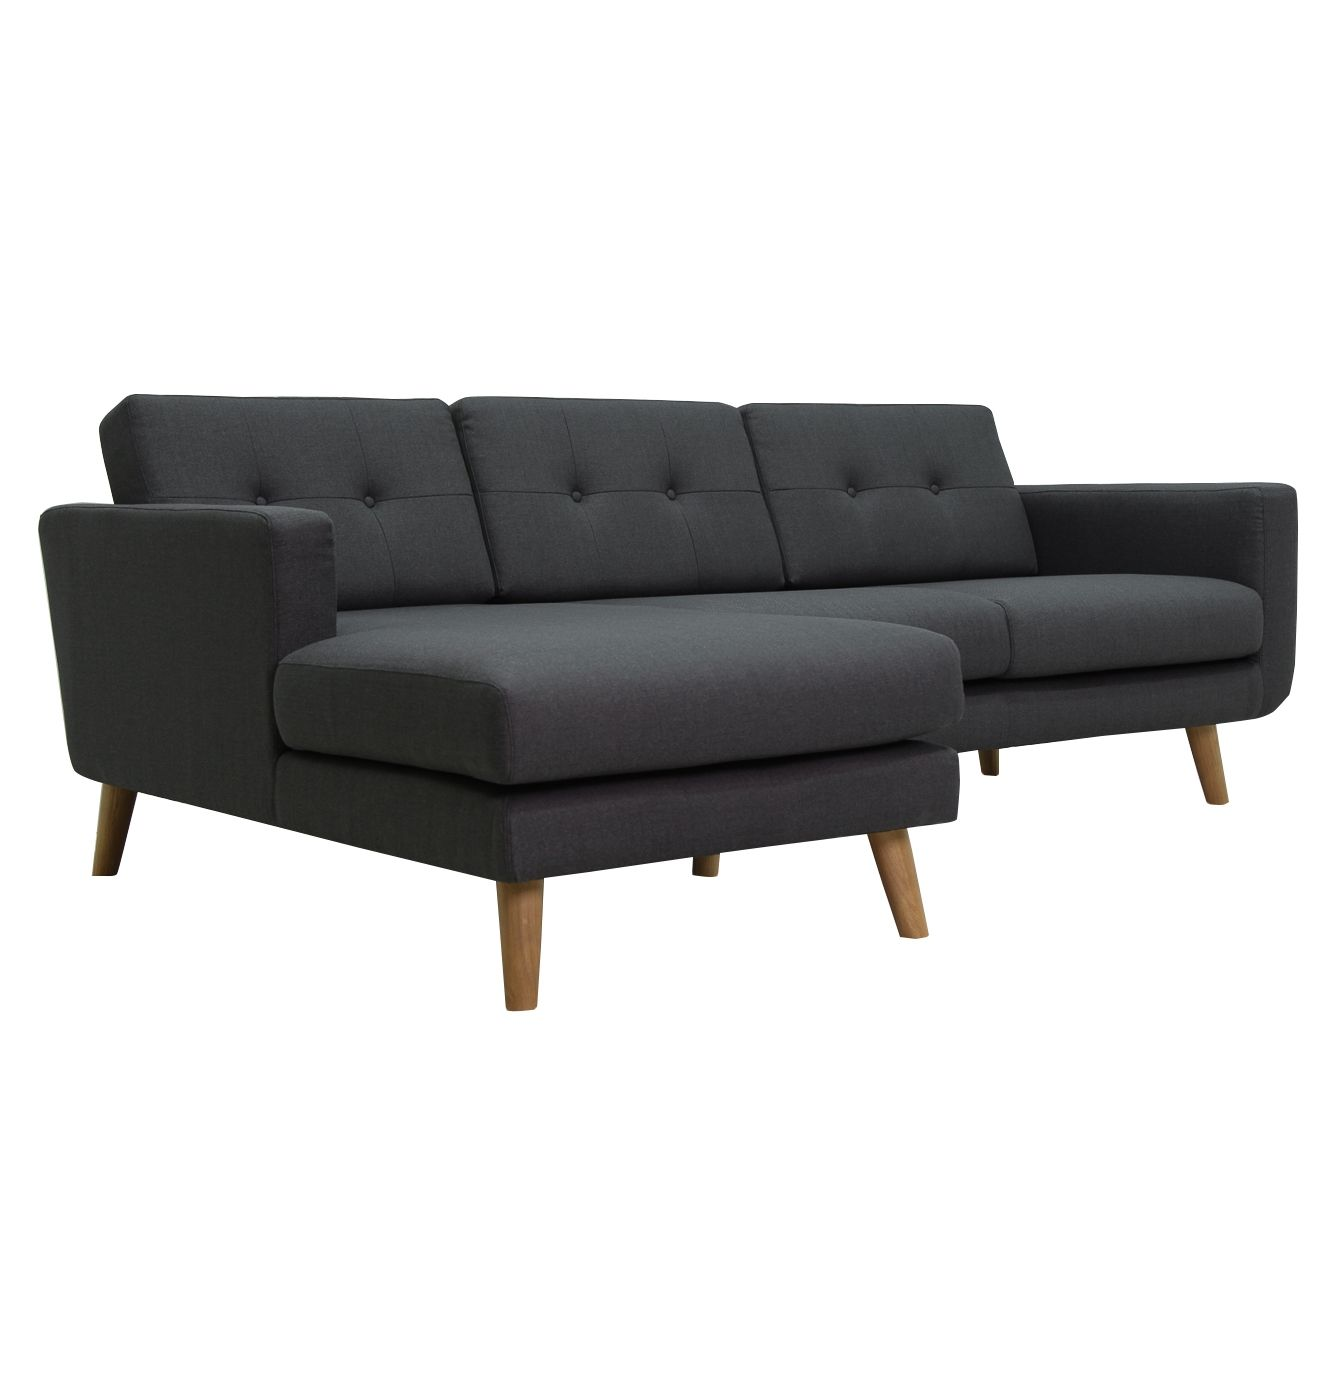 Christian Rudolph-Christiansen Winner 3 Seater Sofa with Chaise by Christian Rudolph-Christiansen -  sc 1 st  Pinterest : 3 seater couch with chaise - Sectionals, Sofas & Couches